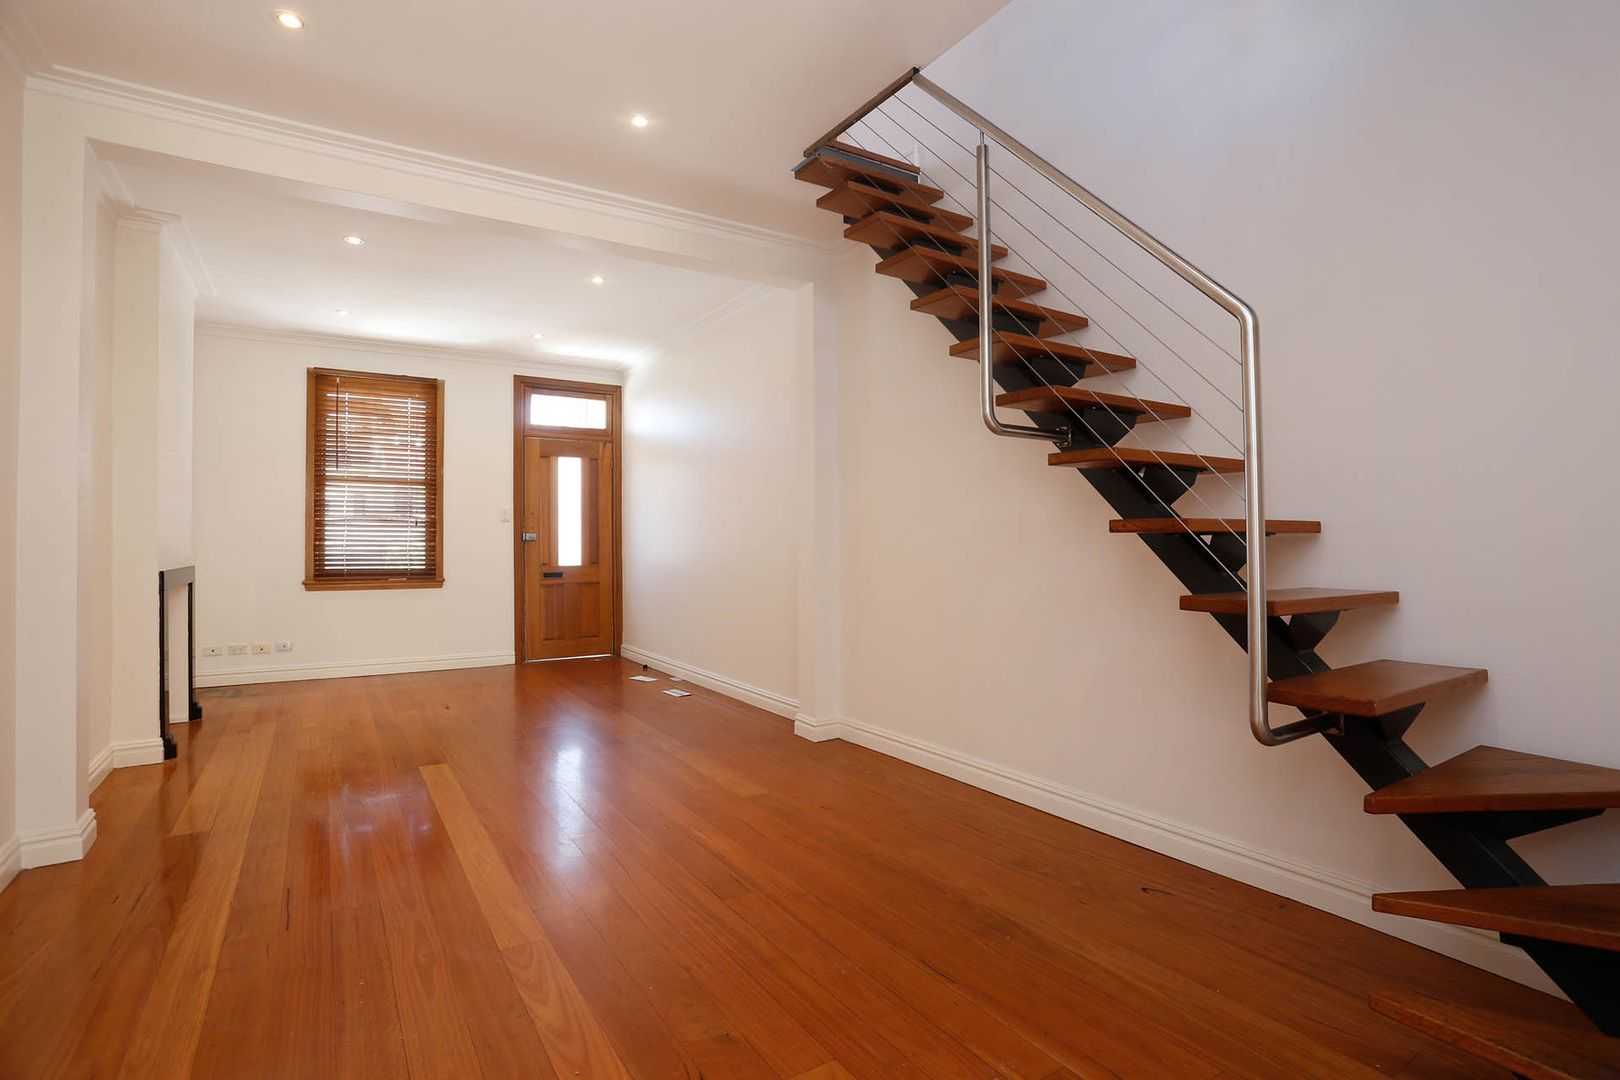 7 Bowden St, Woollahra NSW 2025, Image 1